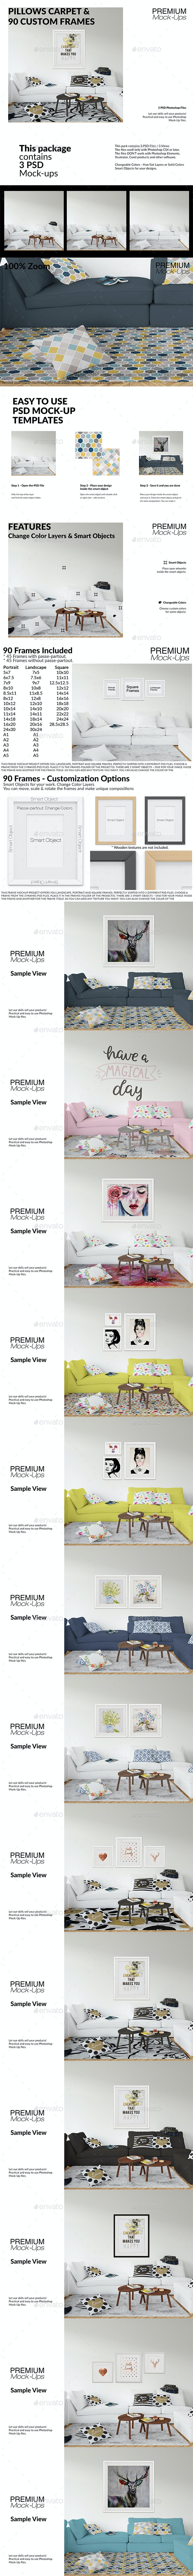 Throw Pillows Carpet & Frames Set - Print Product Mock-Ups